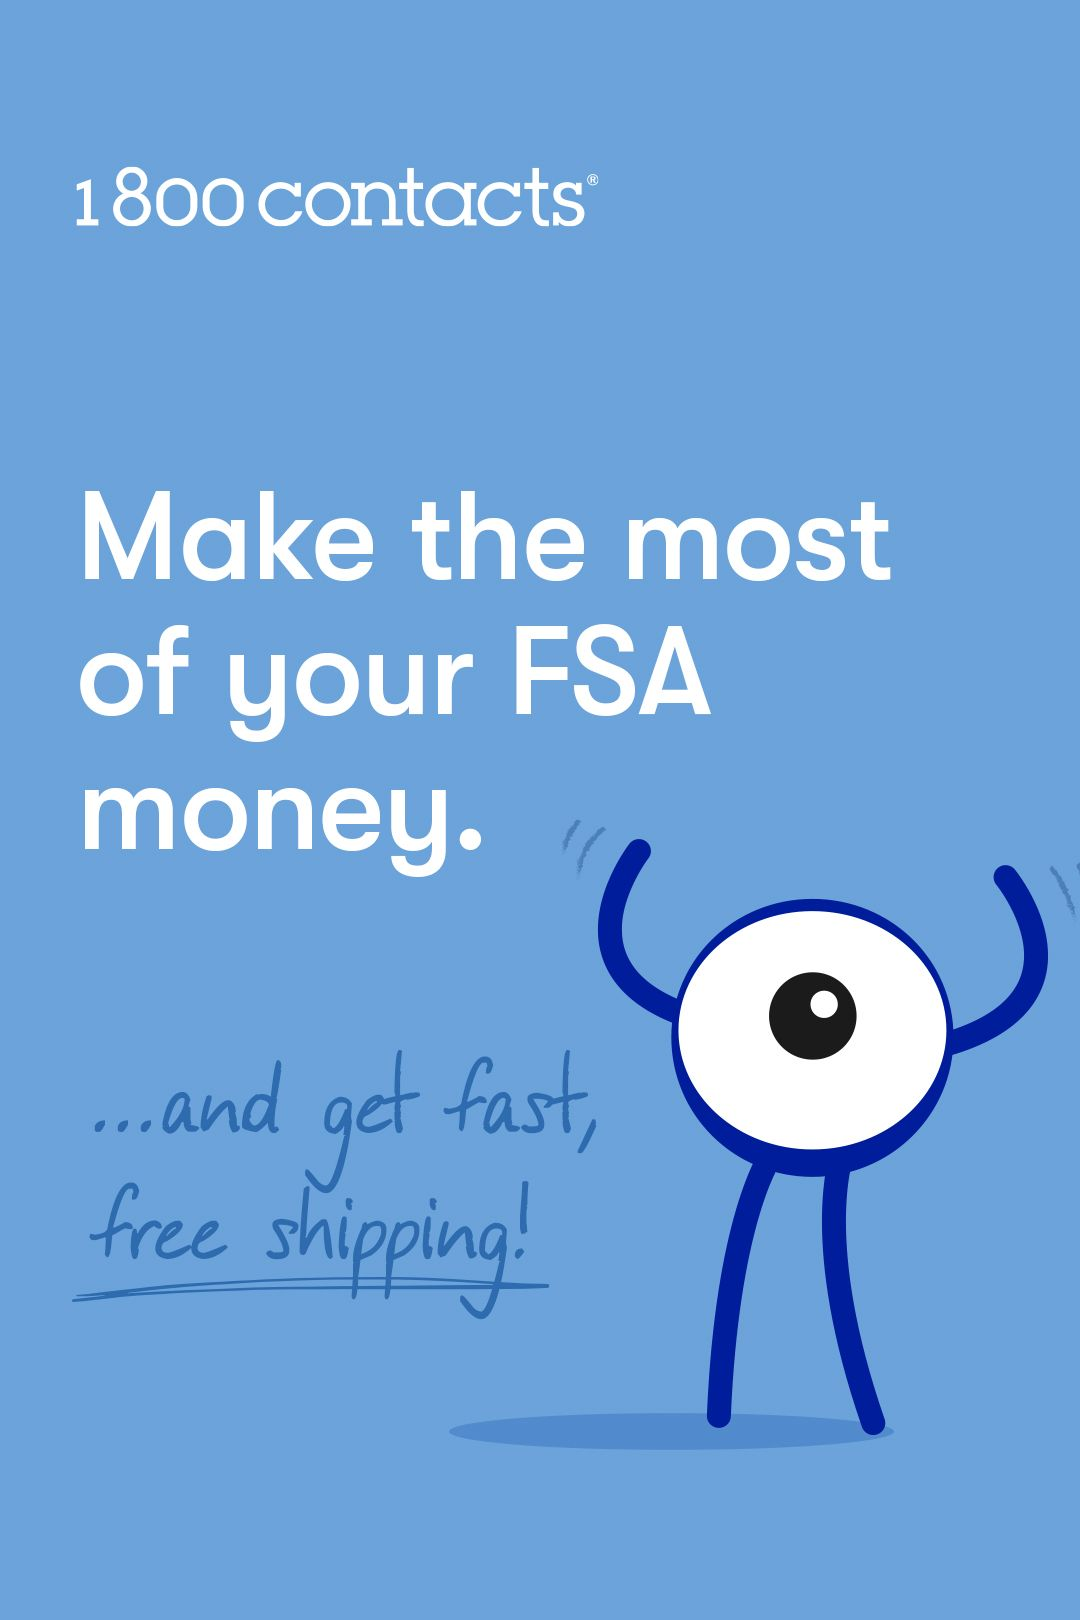 Make the most of your FSA $$